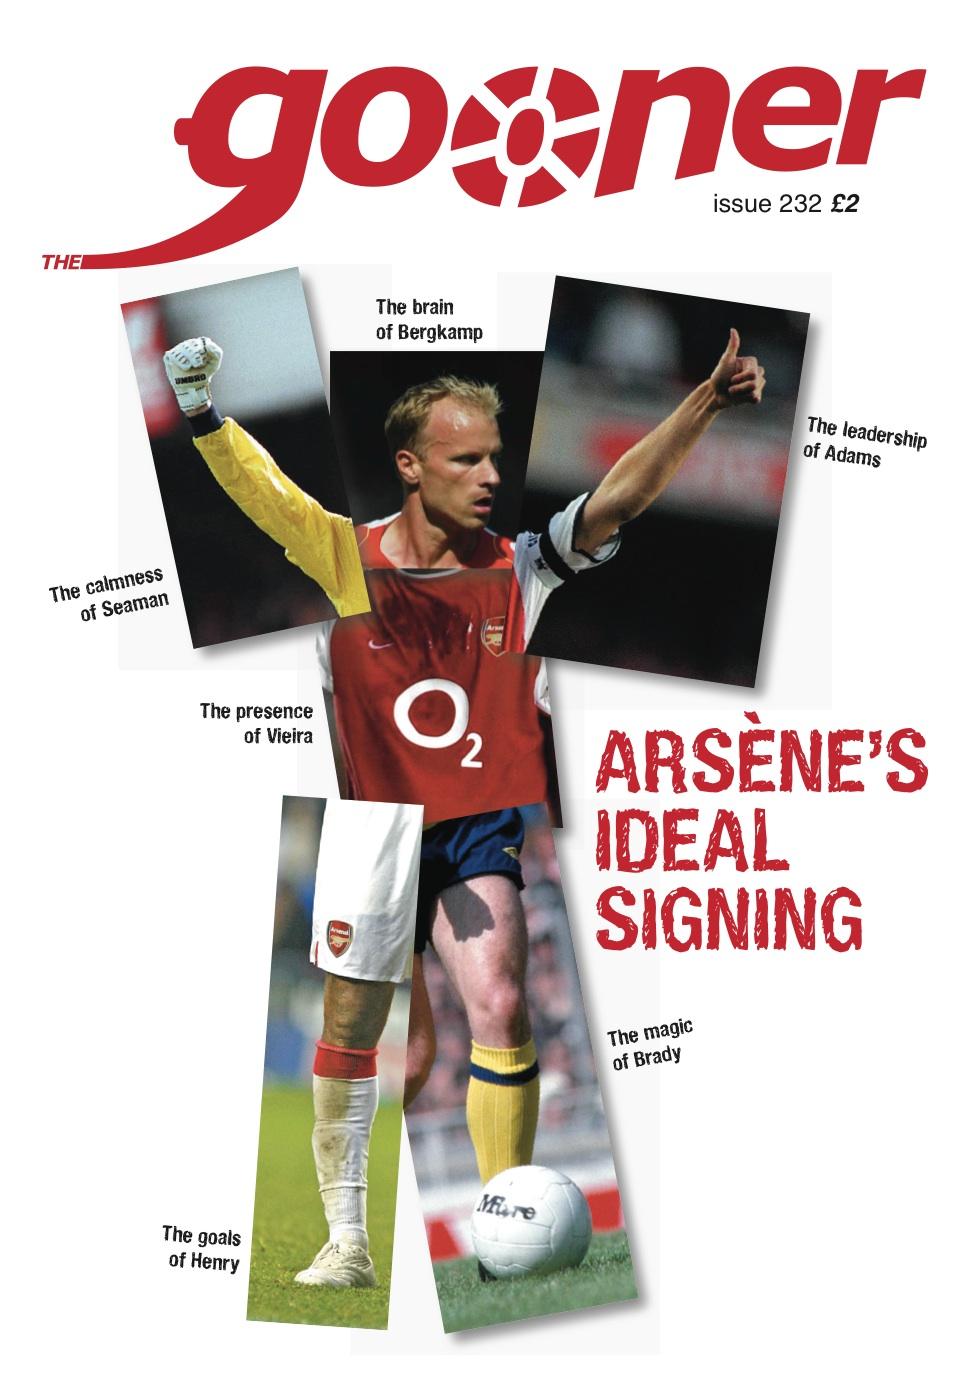 The Gooner - Issue 232